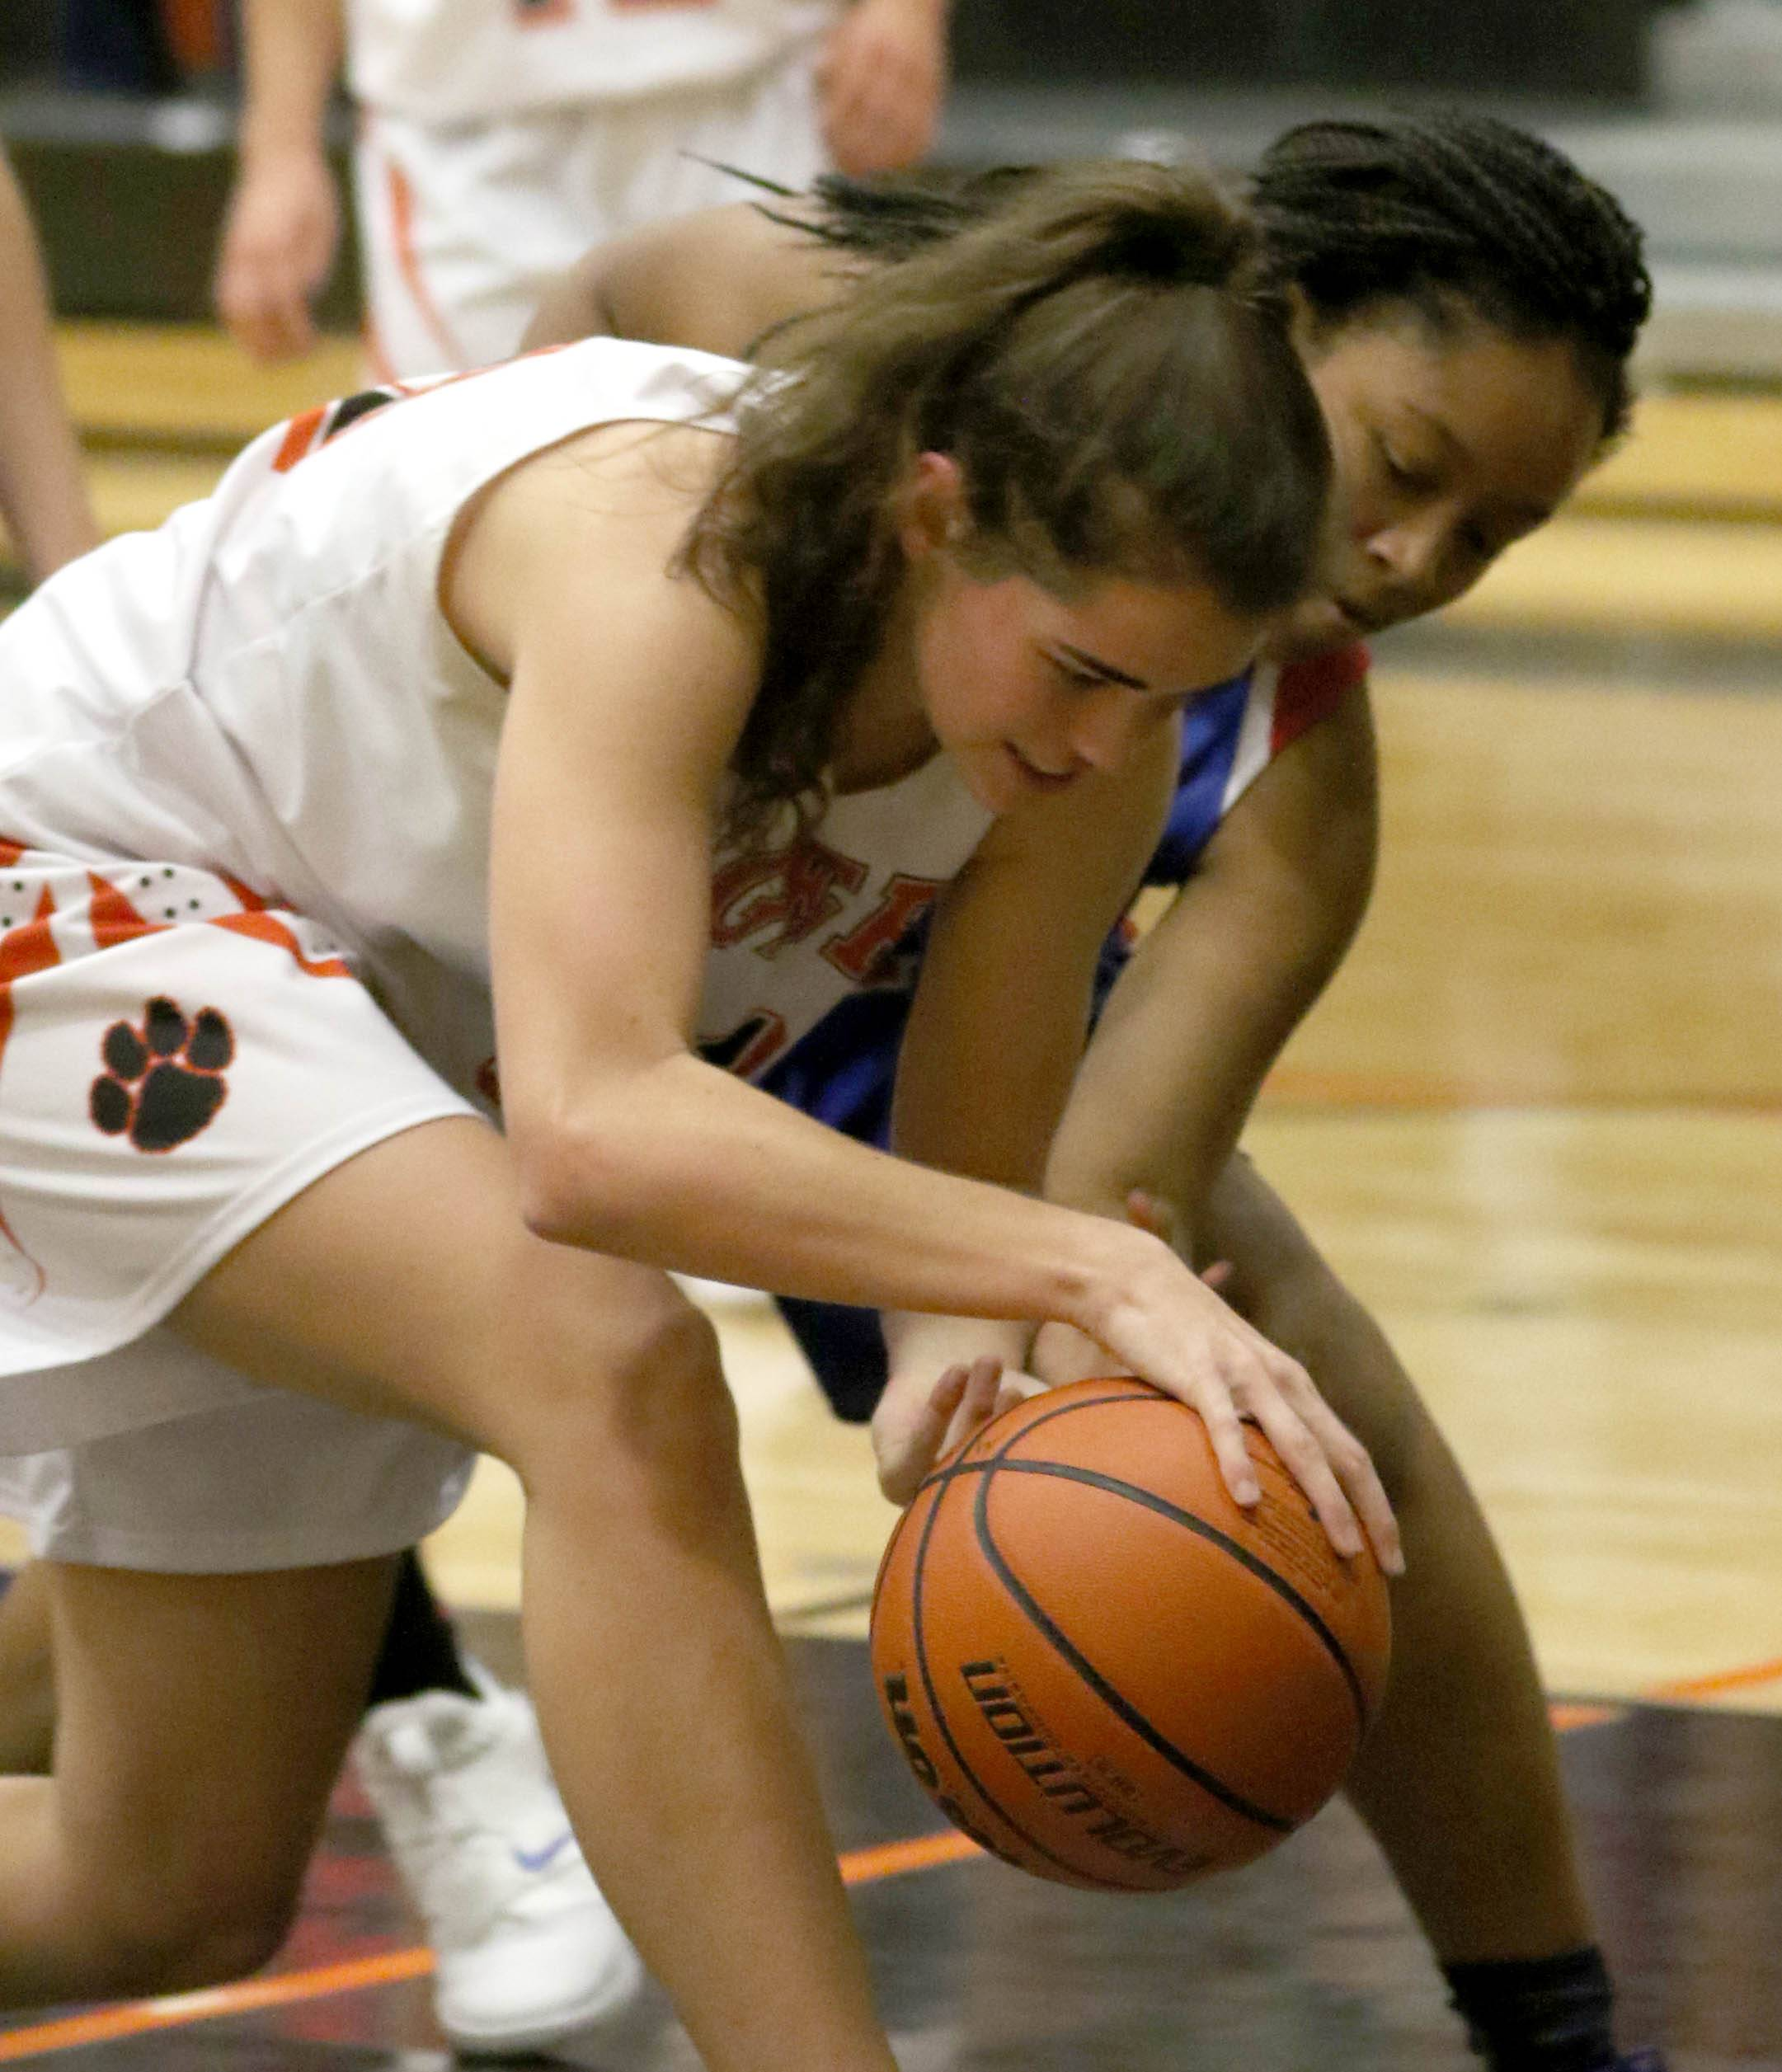 Glenbard South's Kori Willison, far, and Wheaton Warrenville South's MacKenzie Stebbins race to the ball during varsity girls basketball at Wheaton Warrenville South High School Wednesday evening.